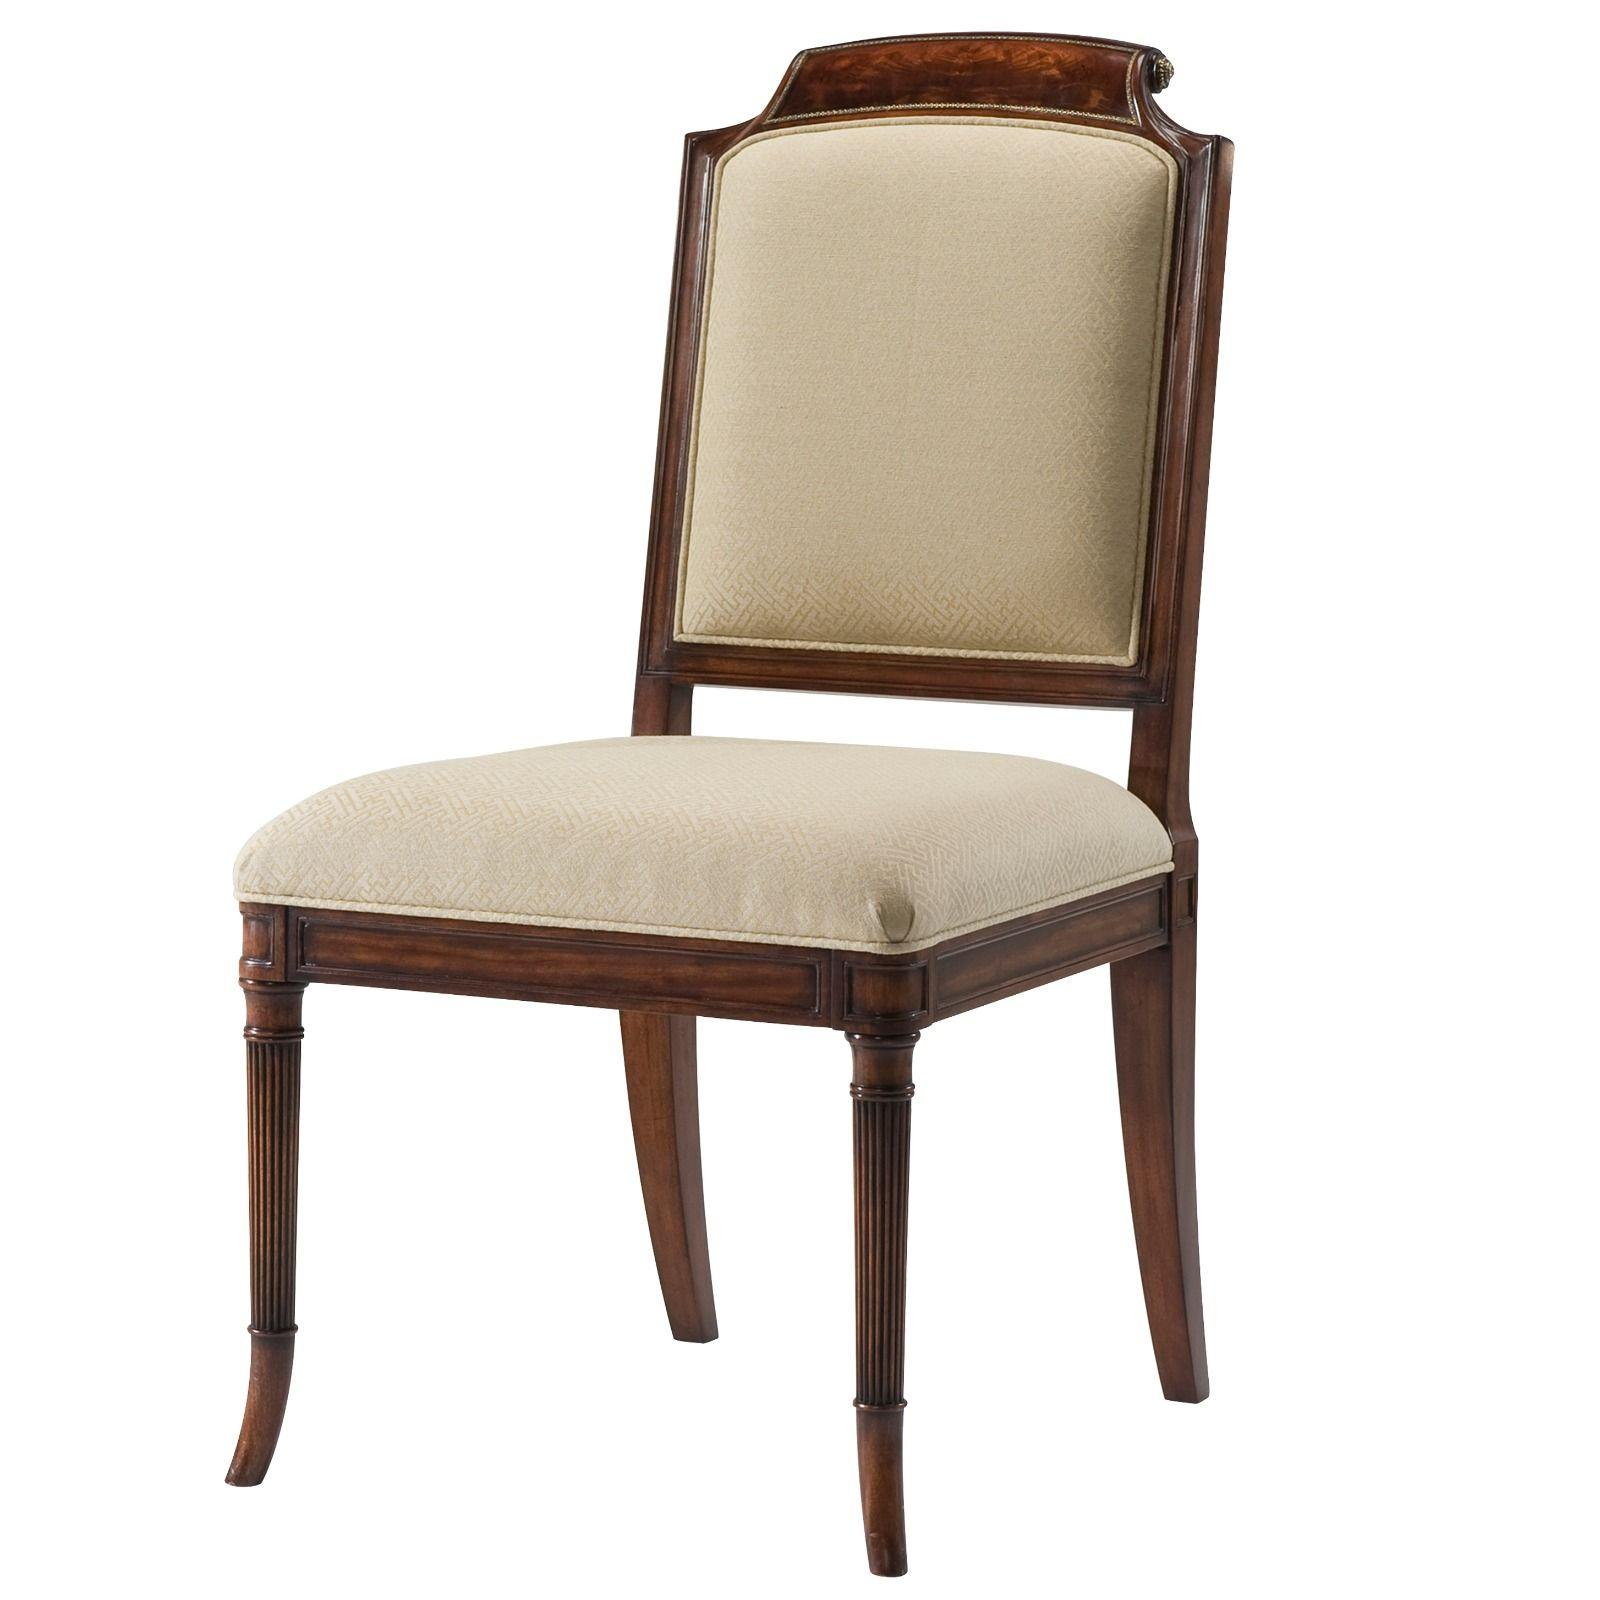 a finely carved mahogany dining chair dining chairs from brights of nettlebed